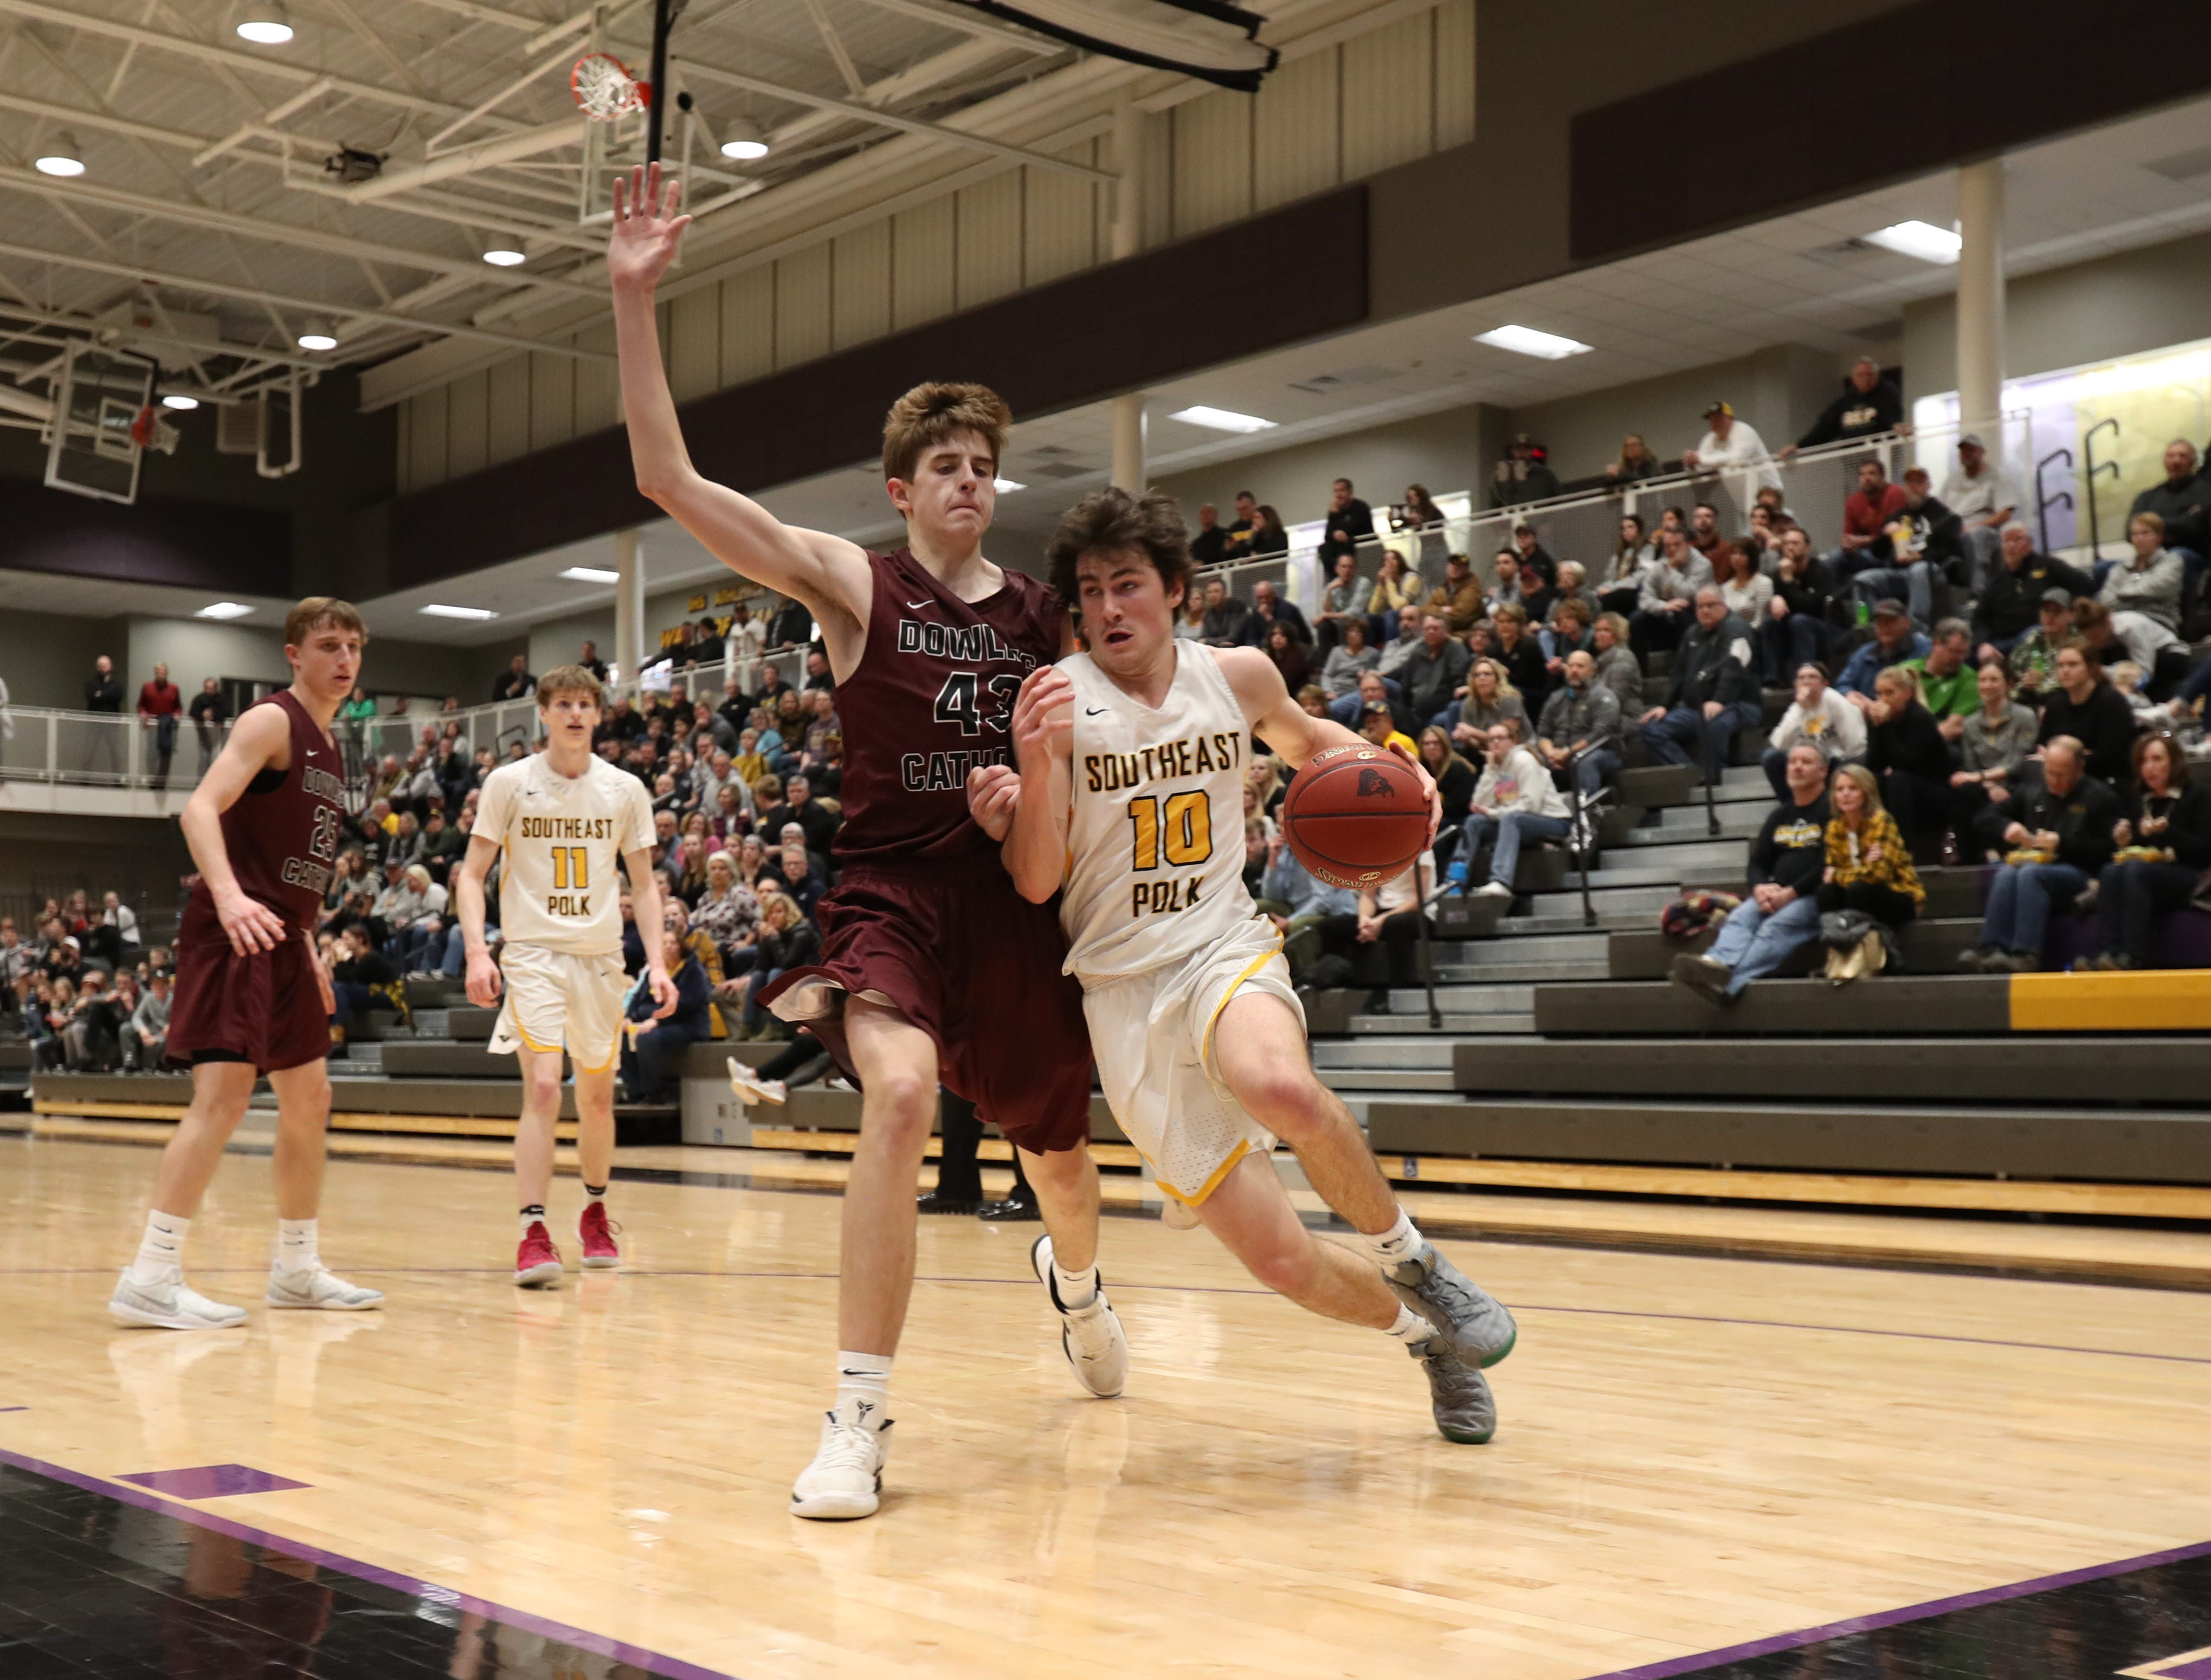 Southeast Polk's Daniel Hackbarth (10) drives baseline past Dowling Catholic's Drew Daniel (43) during their game at Johnston High School in Johnston, Iowa, on Tuesday, Feb. 26, 2019. Dowling won the game 44-40 to advance to state.